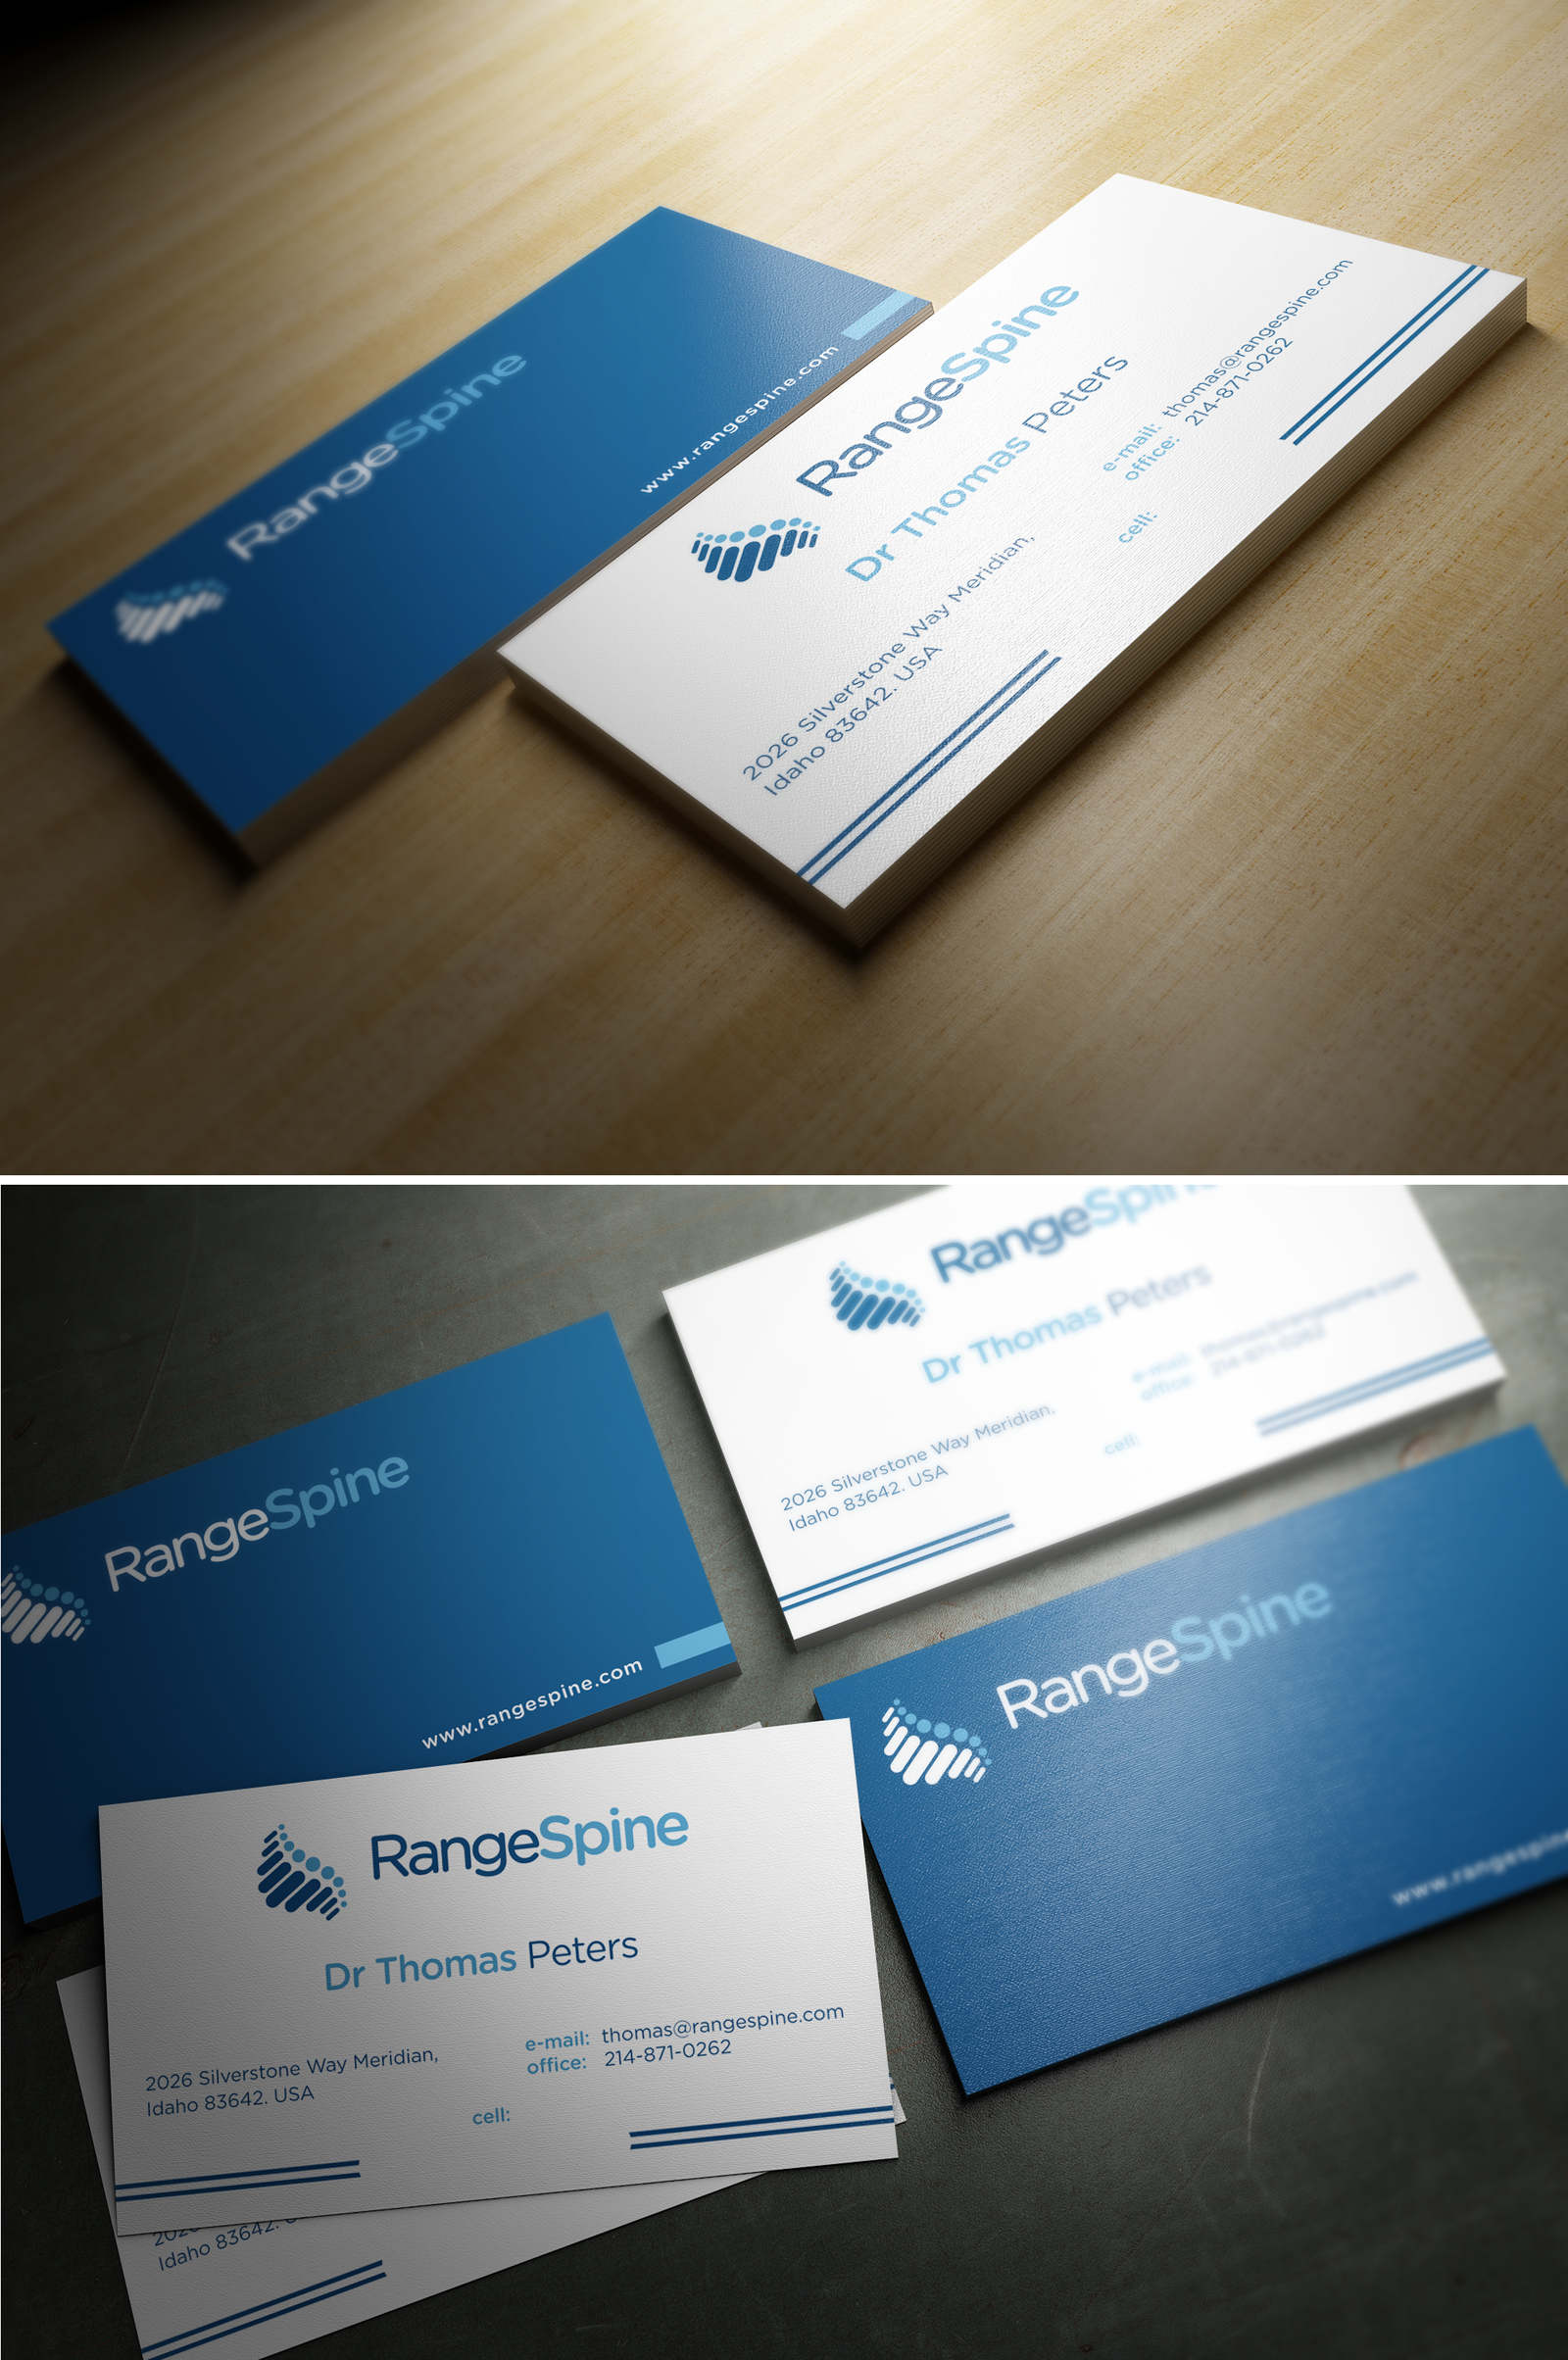 Range Spine needs a new logo and business card